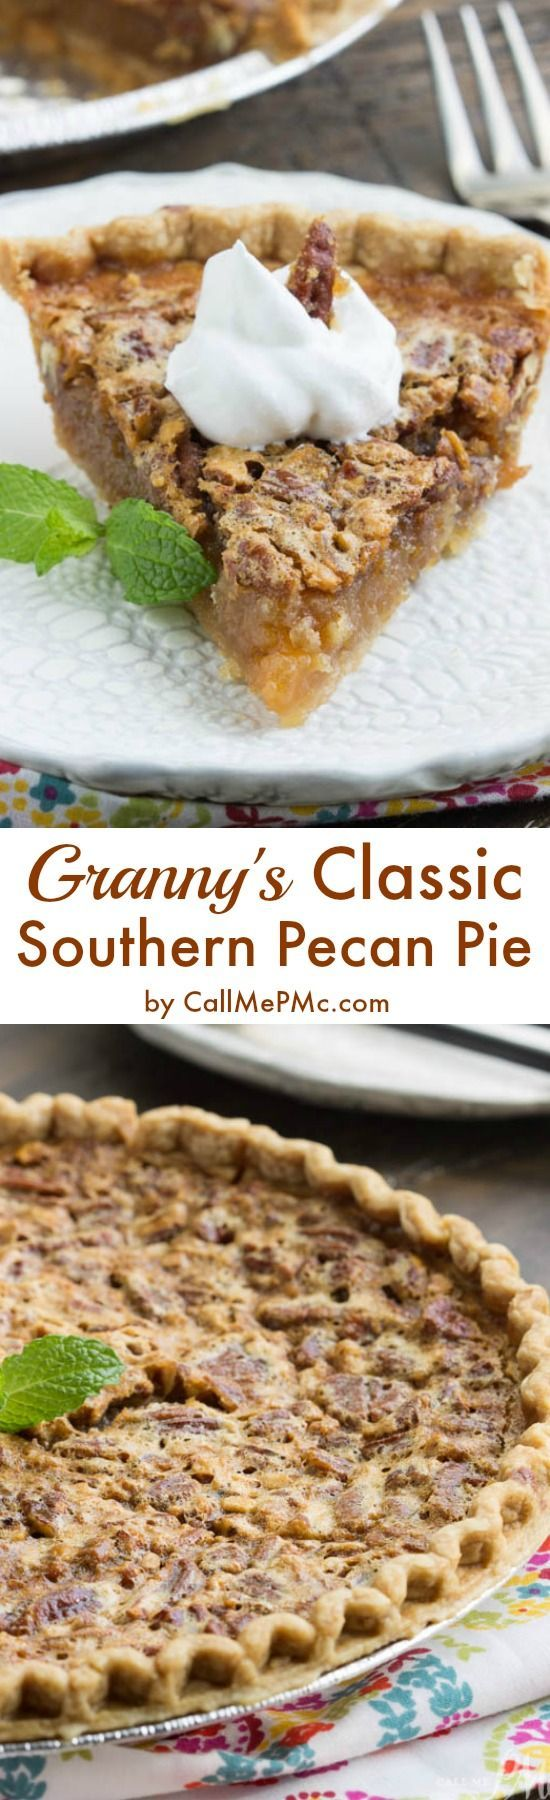 Granny's Classic Southern Pecan Pie - def one you need to save & and have in your box! http://www.callmepmc.com/grannys-classic-southern-pecan-pie/?utm_campaign=coschedule&utm_source=pinterest&utm_medium=Paula%20%7C%20CallMePMc.com&utm_content=Granny%27s%20Classic%20Southern%20Pecan%20Pie